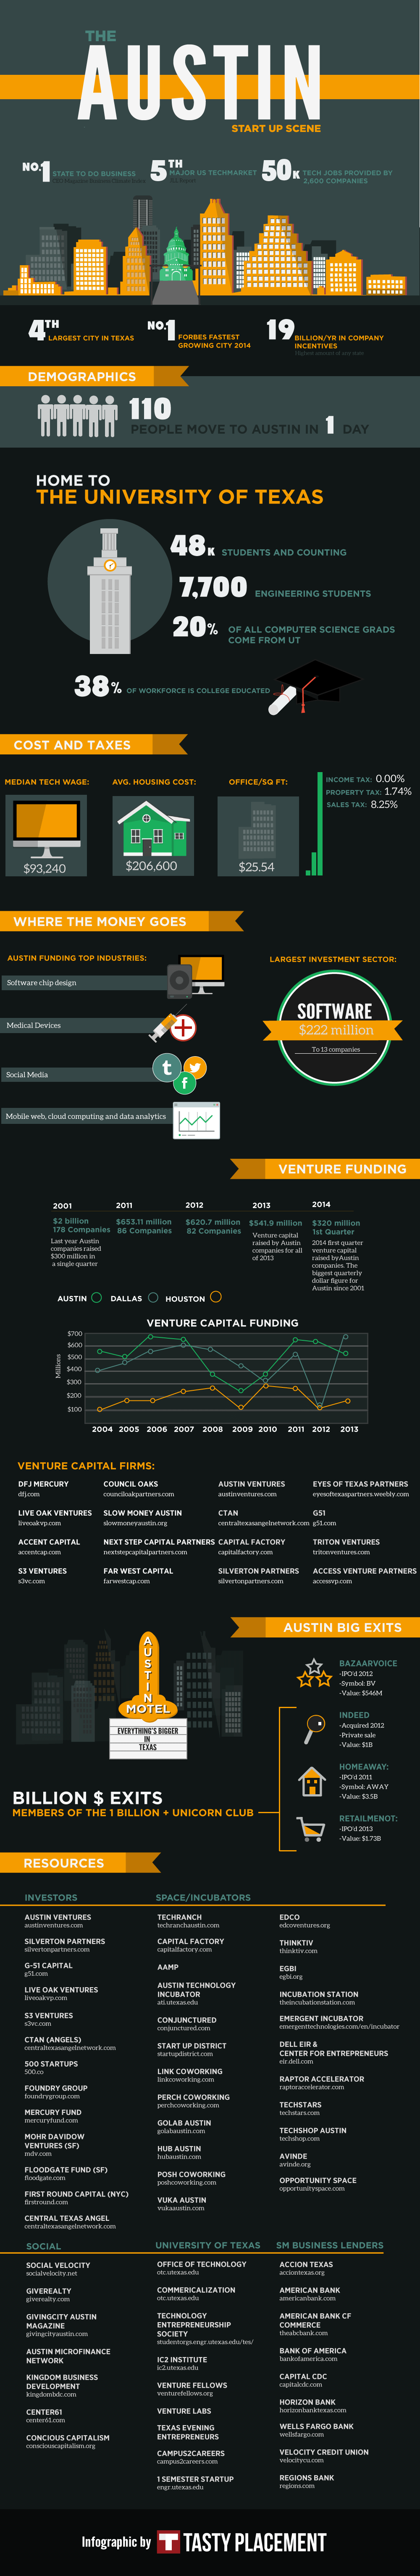 start-up-infographic_9.24